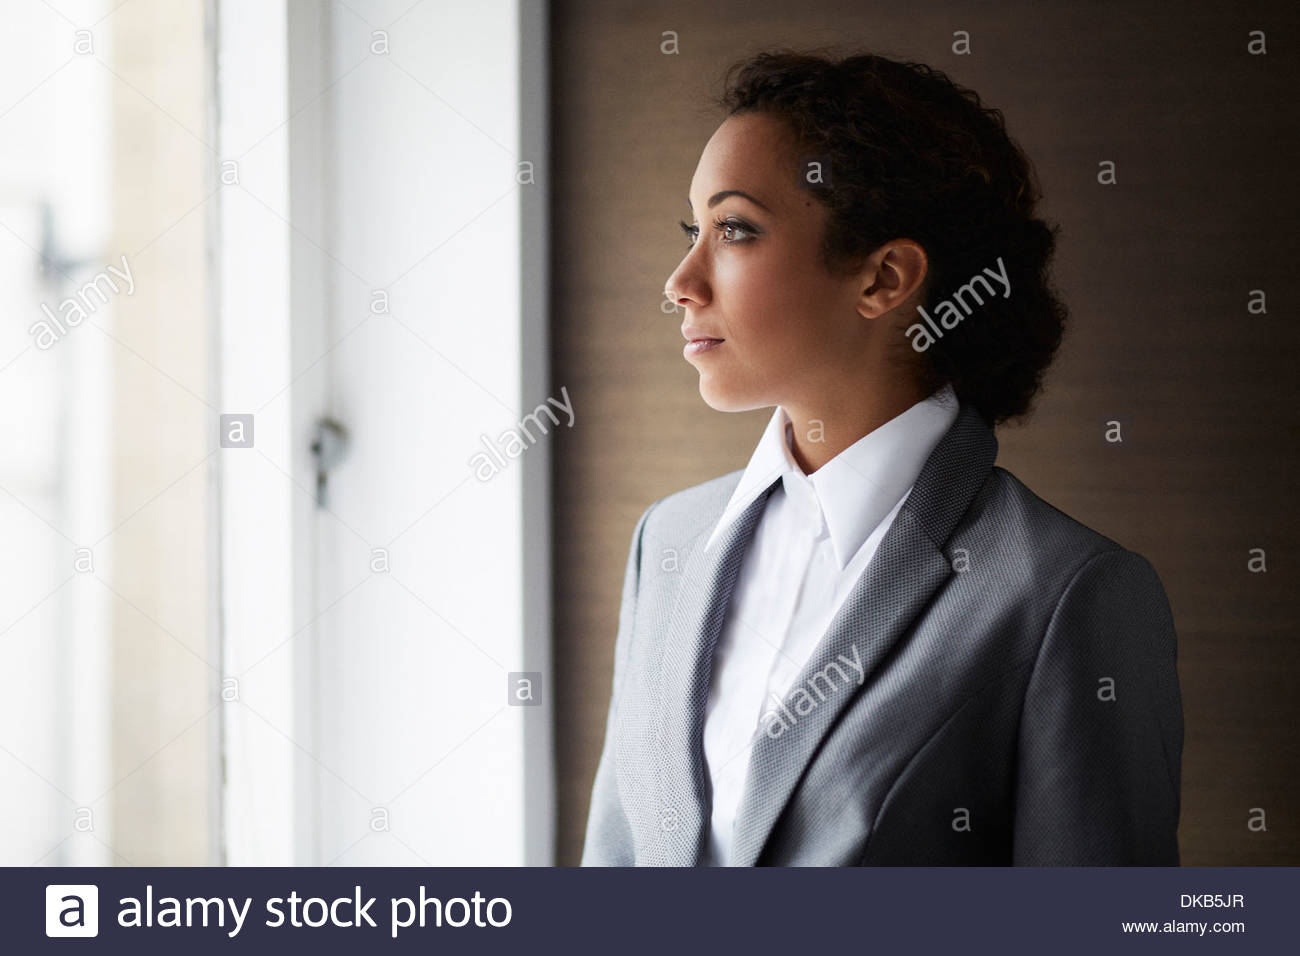 Portrait of businesswoman looking out of window - Stock Image